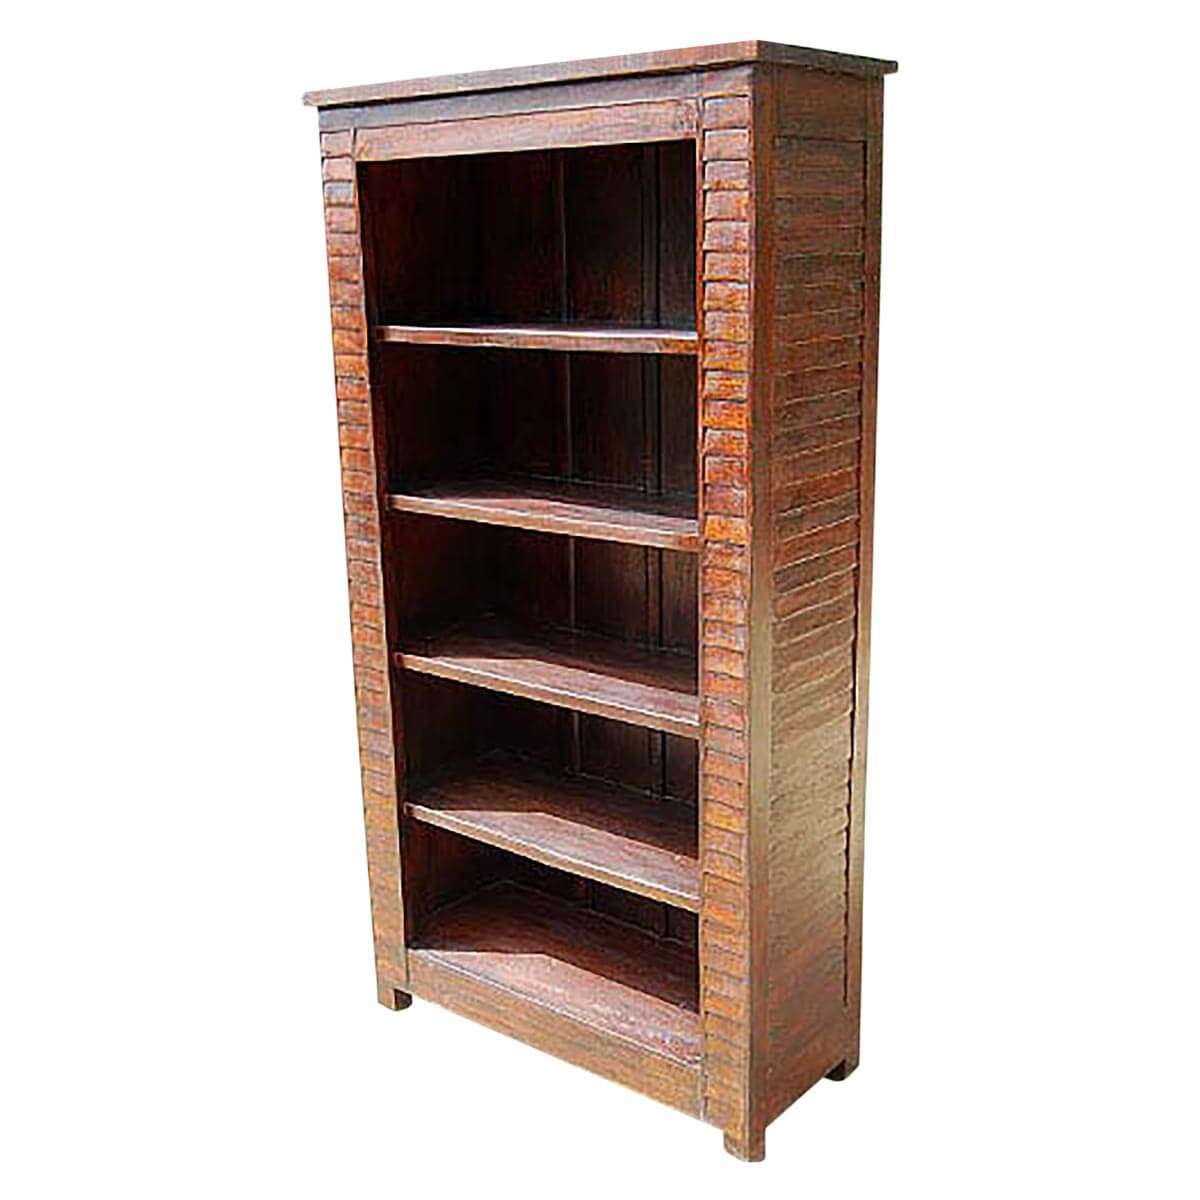 Large Wooden Bookcases ~ Solid wood large shelves bookcase book shelf armoire